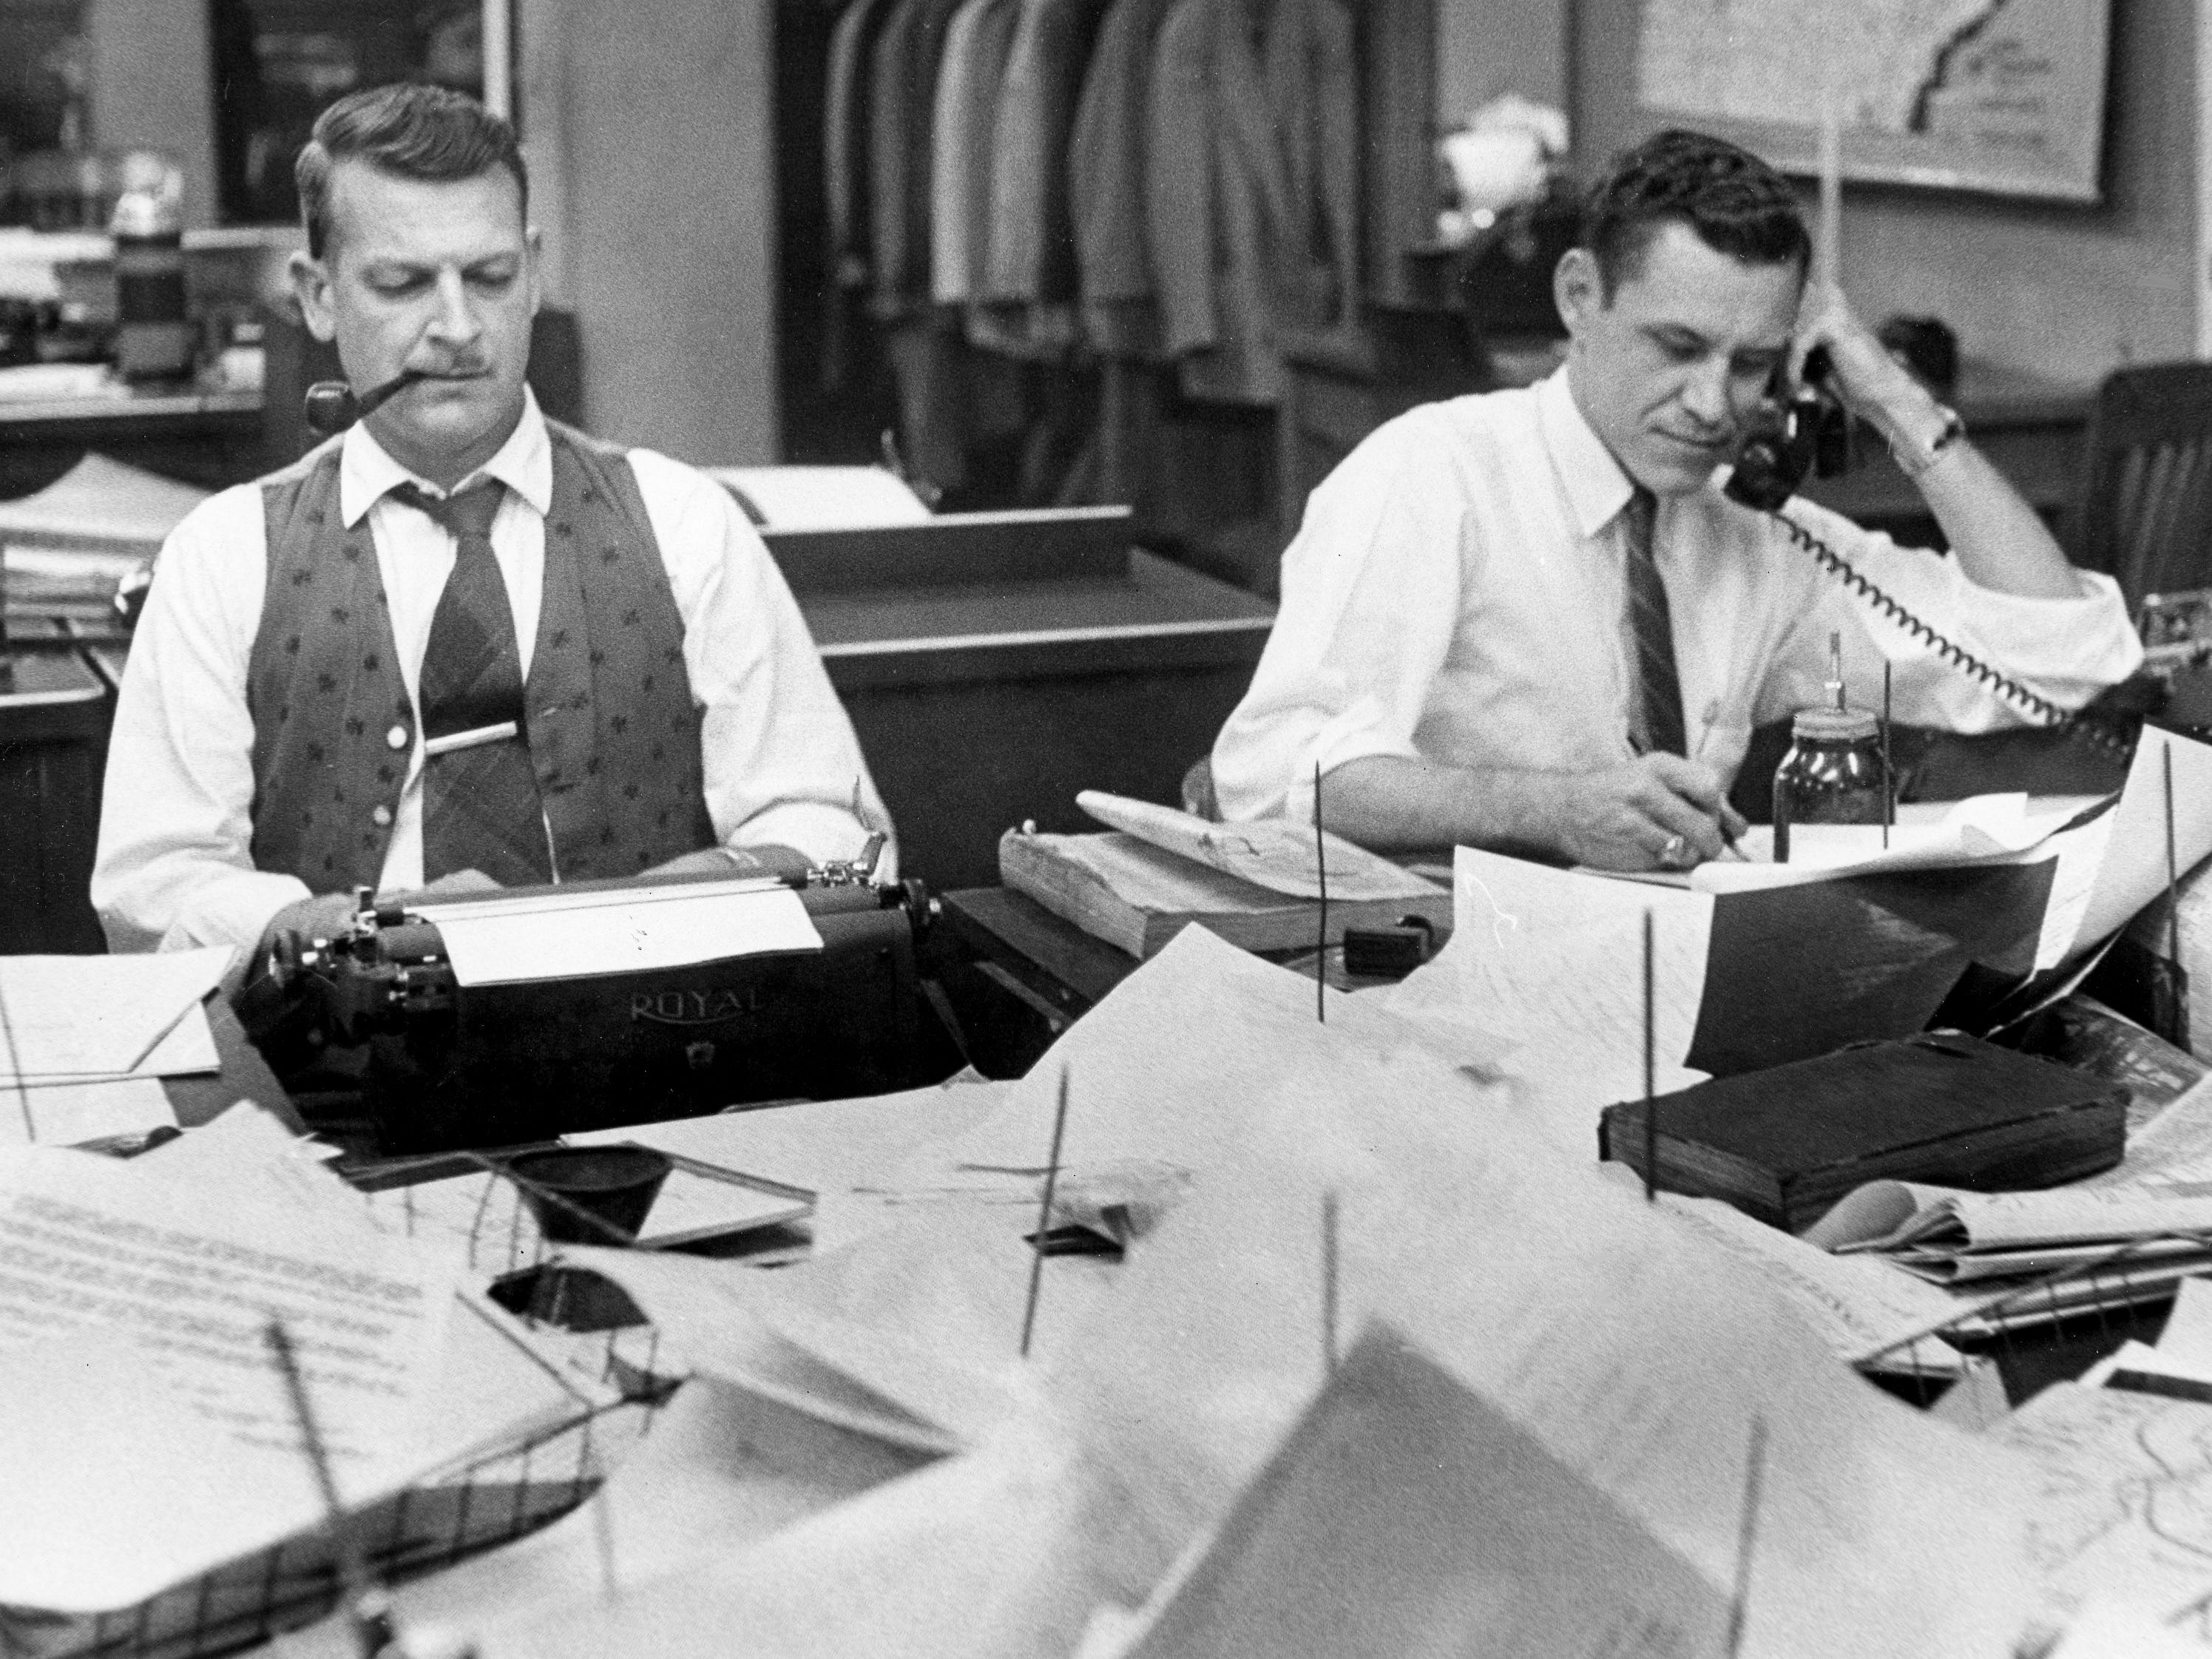 Charles L. Fontenay, left, rewriter, and Harold Julian, assistant state editor, work in The Tennessean city room Oct. 21, 1959.